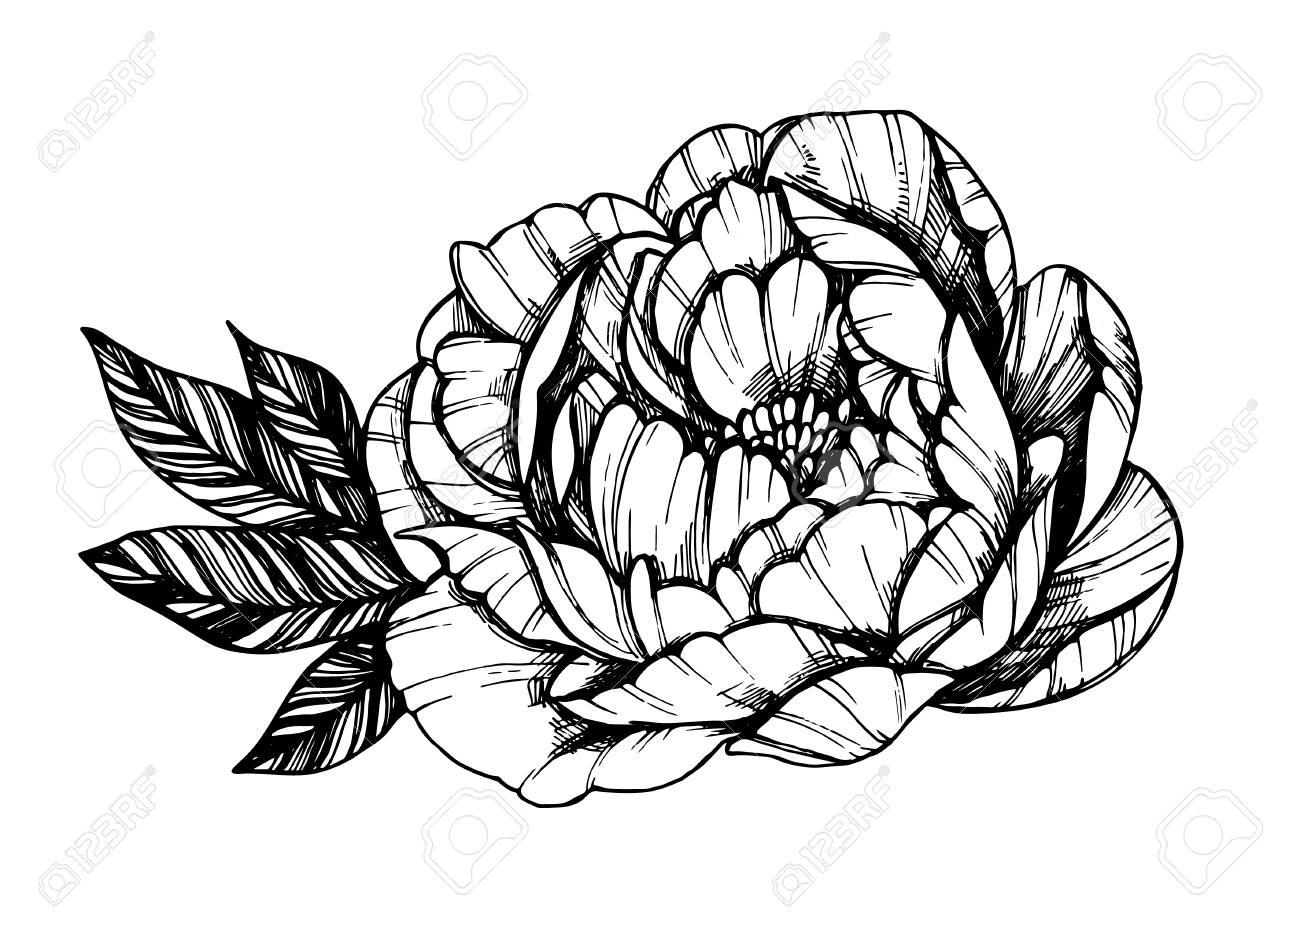 Hand Drawn Vector Illustration Peony Flower Floral Tattoo Royalty Free Cliparts Vectors And Stock Illustration Image 114785742